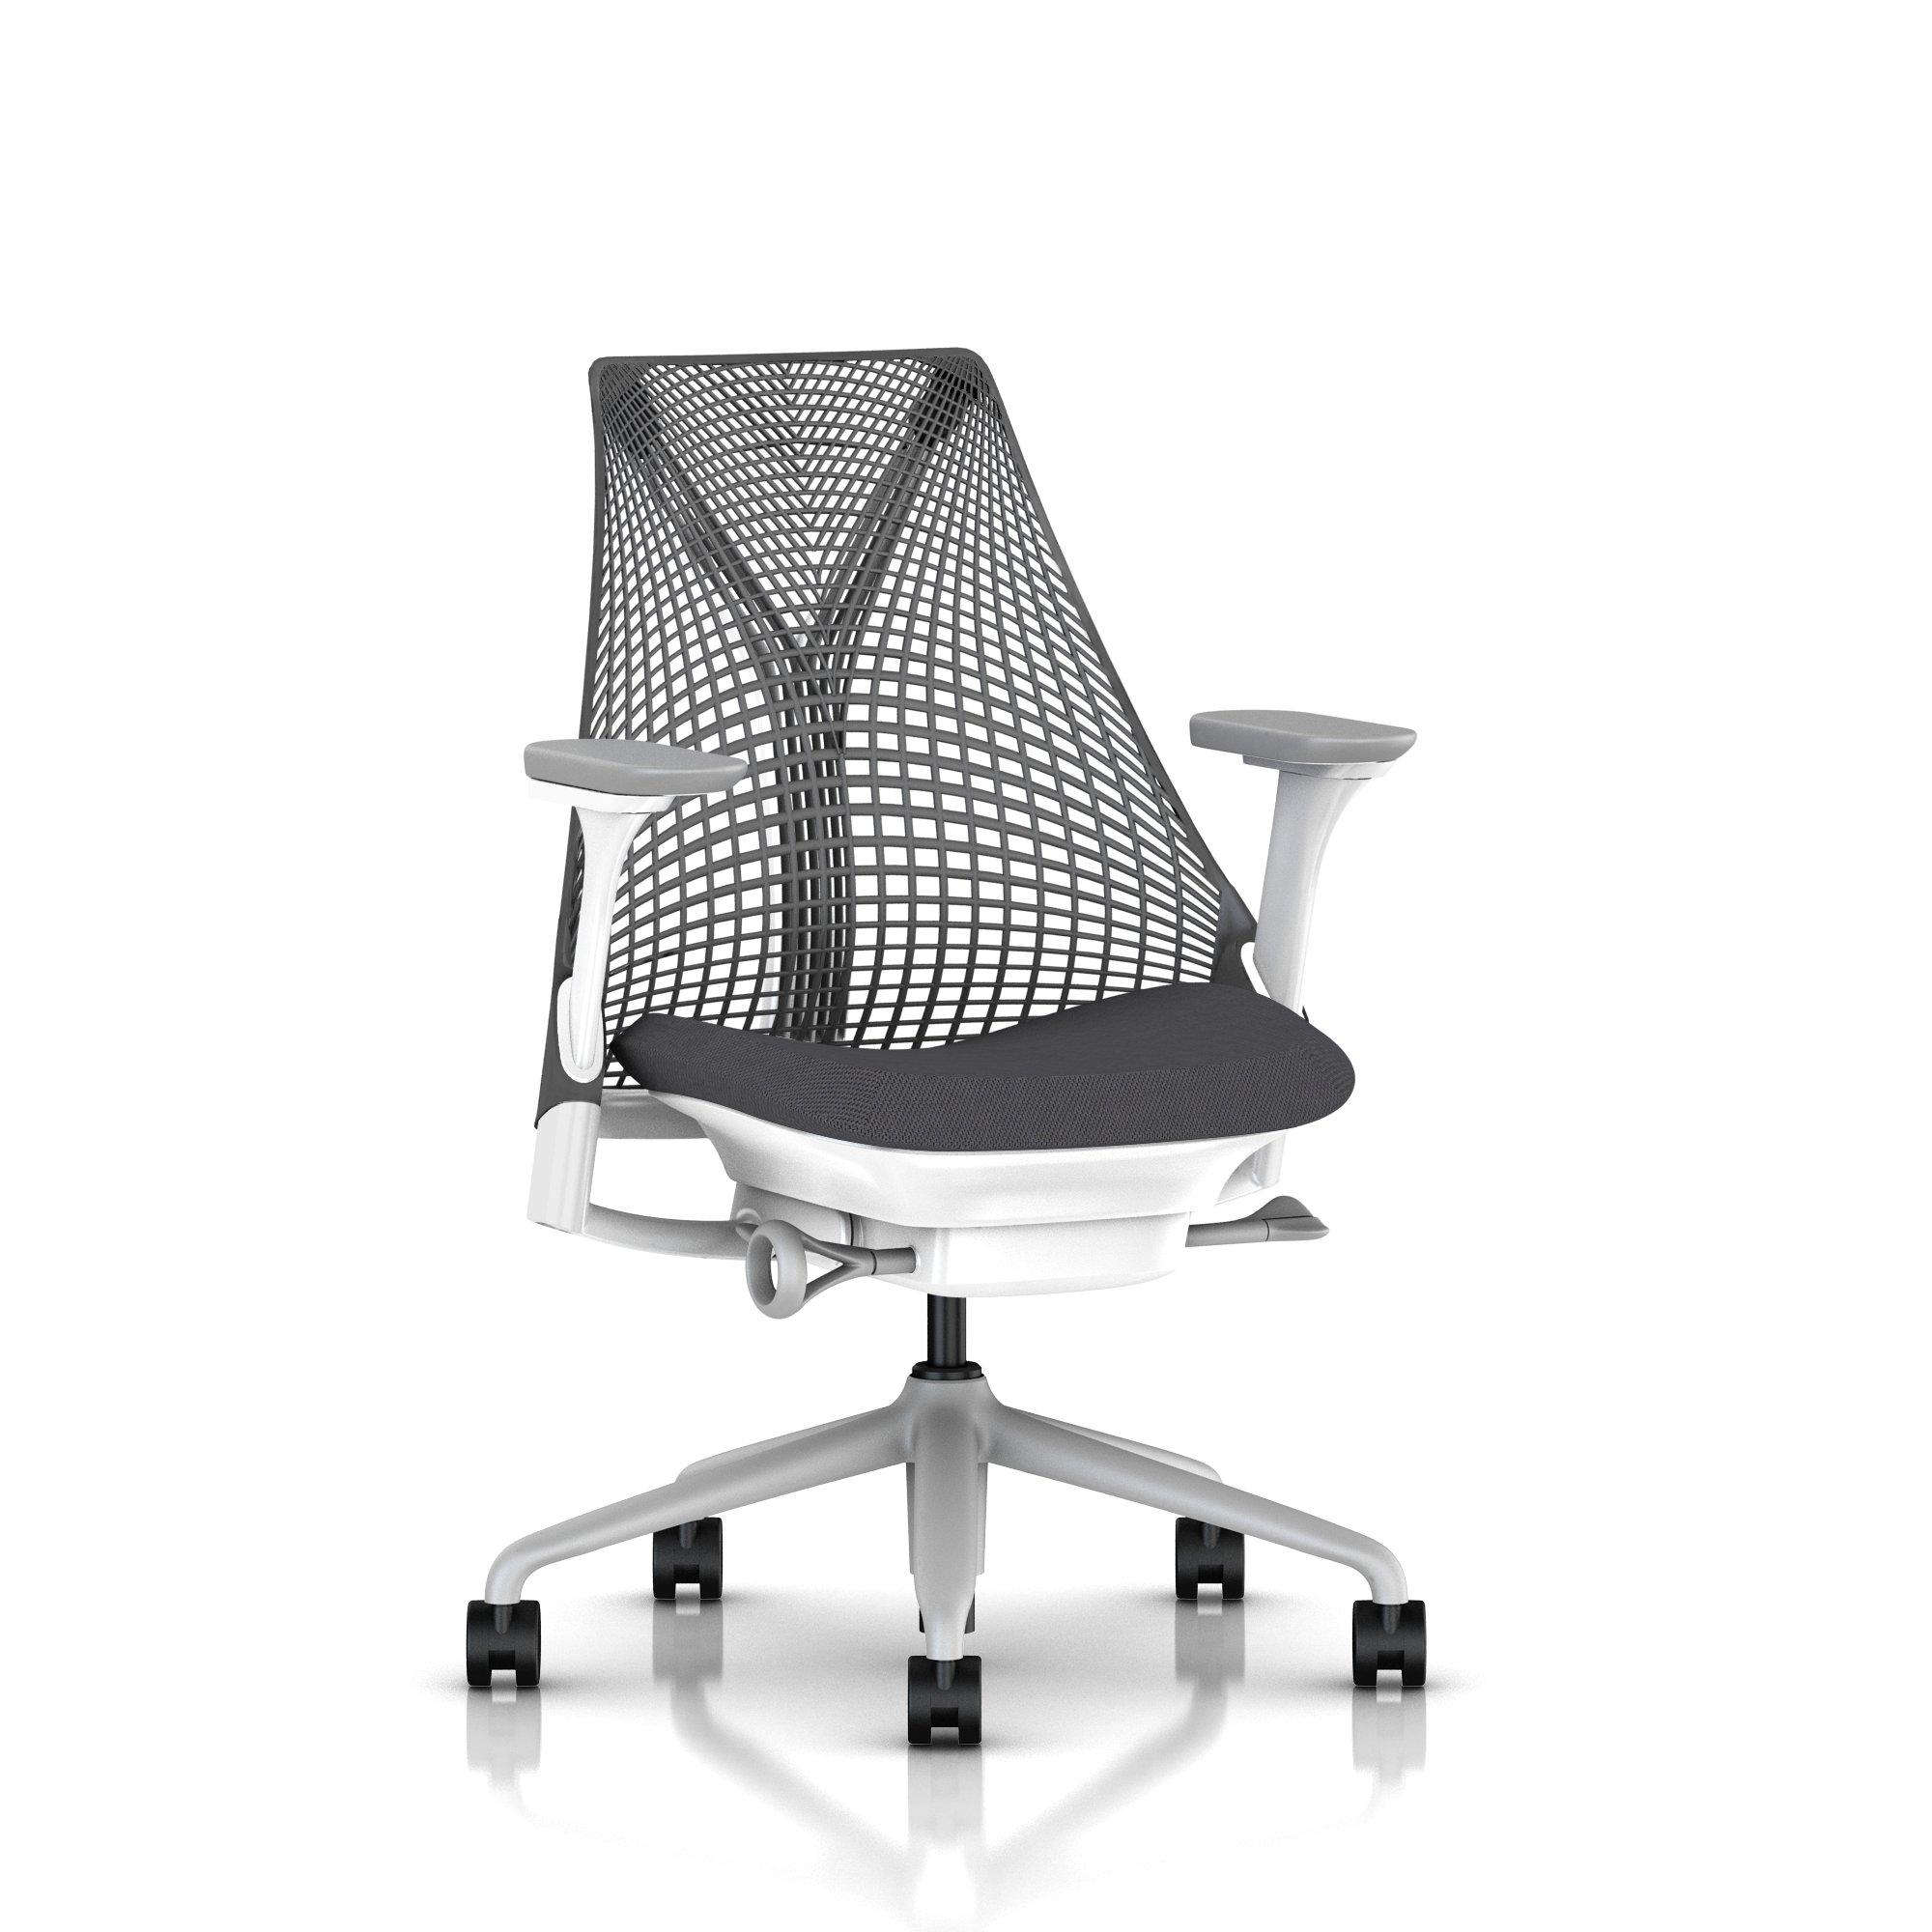 Fog Base with Studio White Y-Tower, Slate Grey Back, Cosmo Granite Fabric Seat, Fog Armpad, Tilt Limiter with Seat Angle Adjustment, Fully Adjustable Arms, Adjustable Seat Depth, Non-Adjustable Back Support, 2.5-inch Standard Carpet Casters